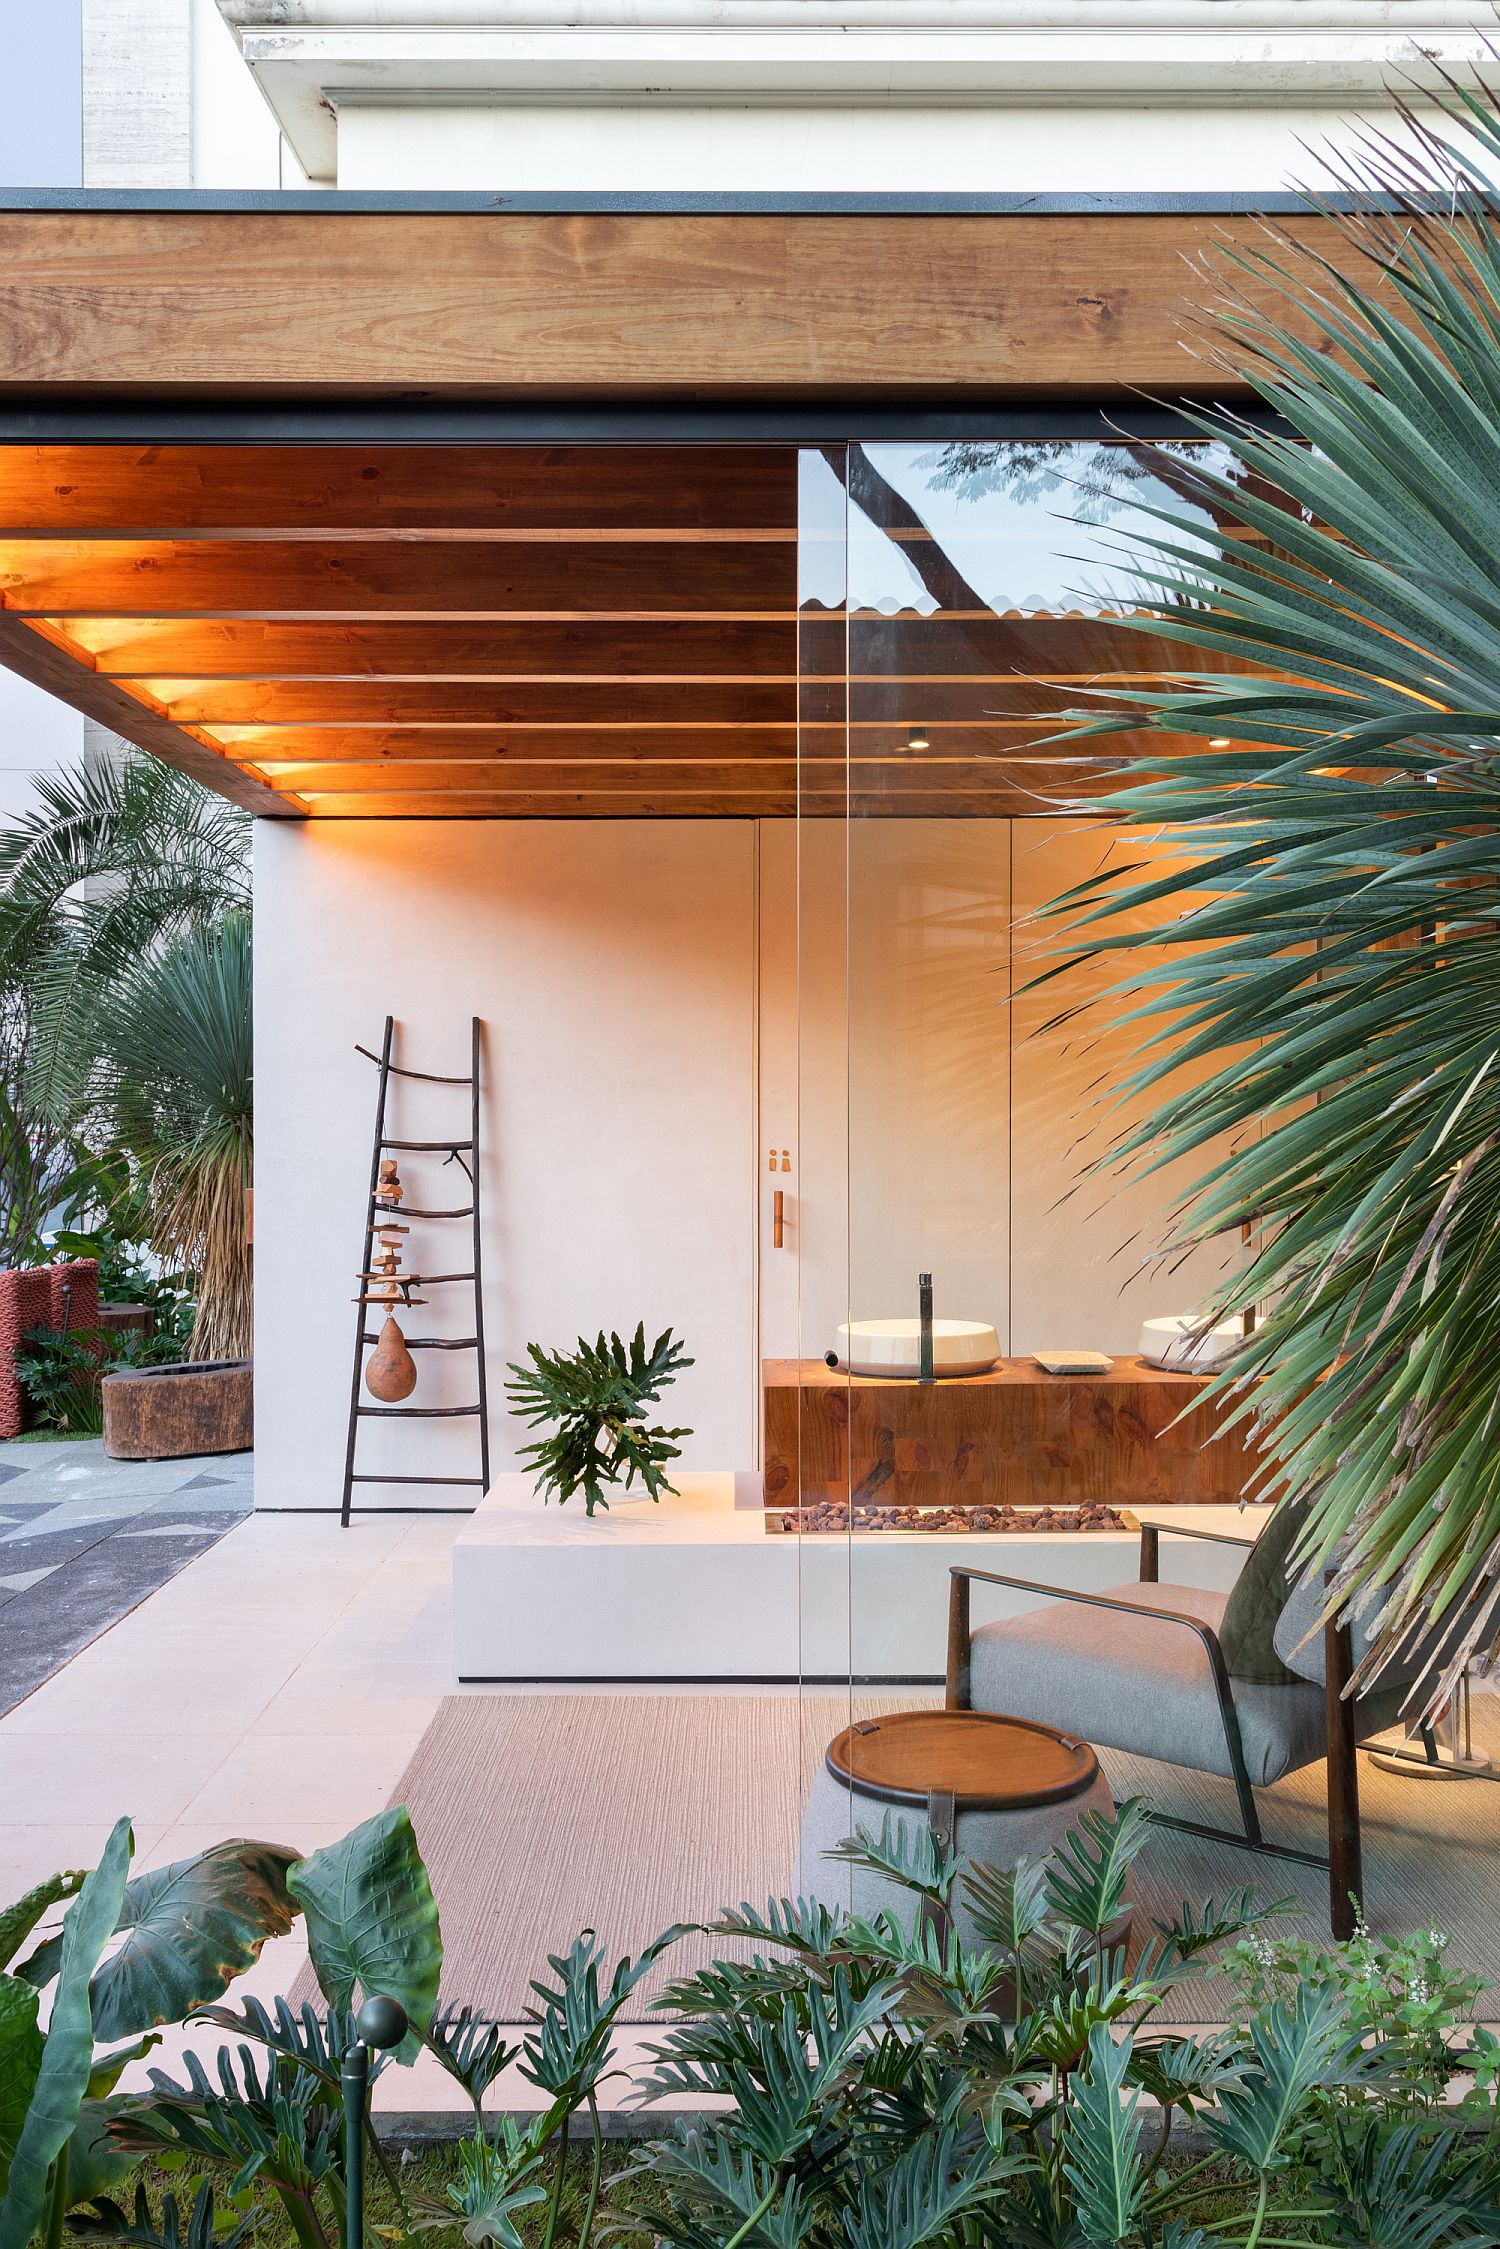 Casual modern style of the terrace with ample greenery and Japanese simplicity